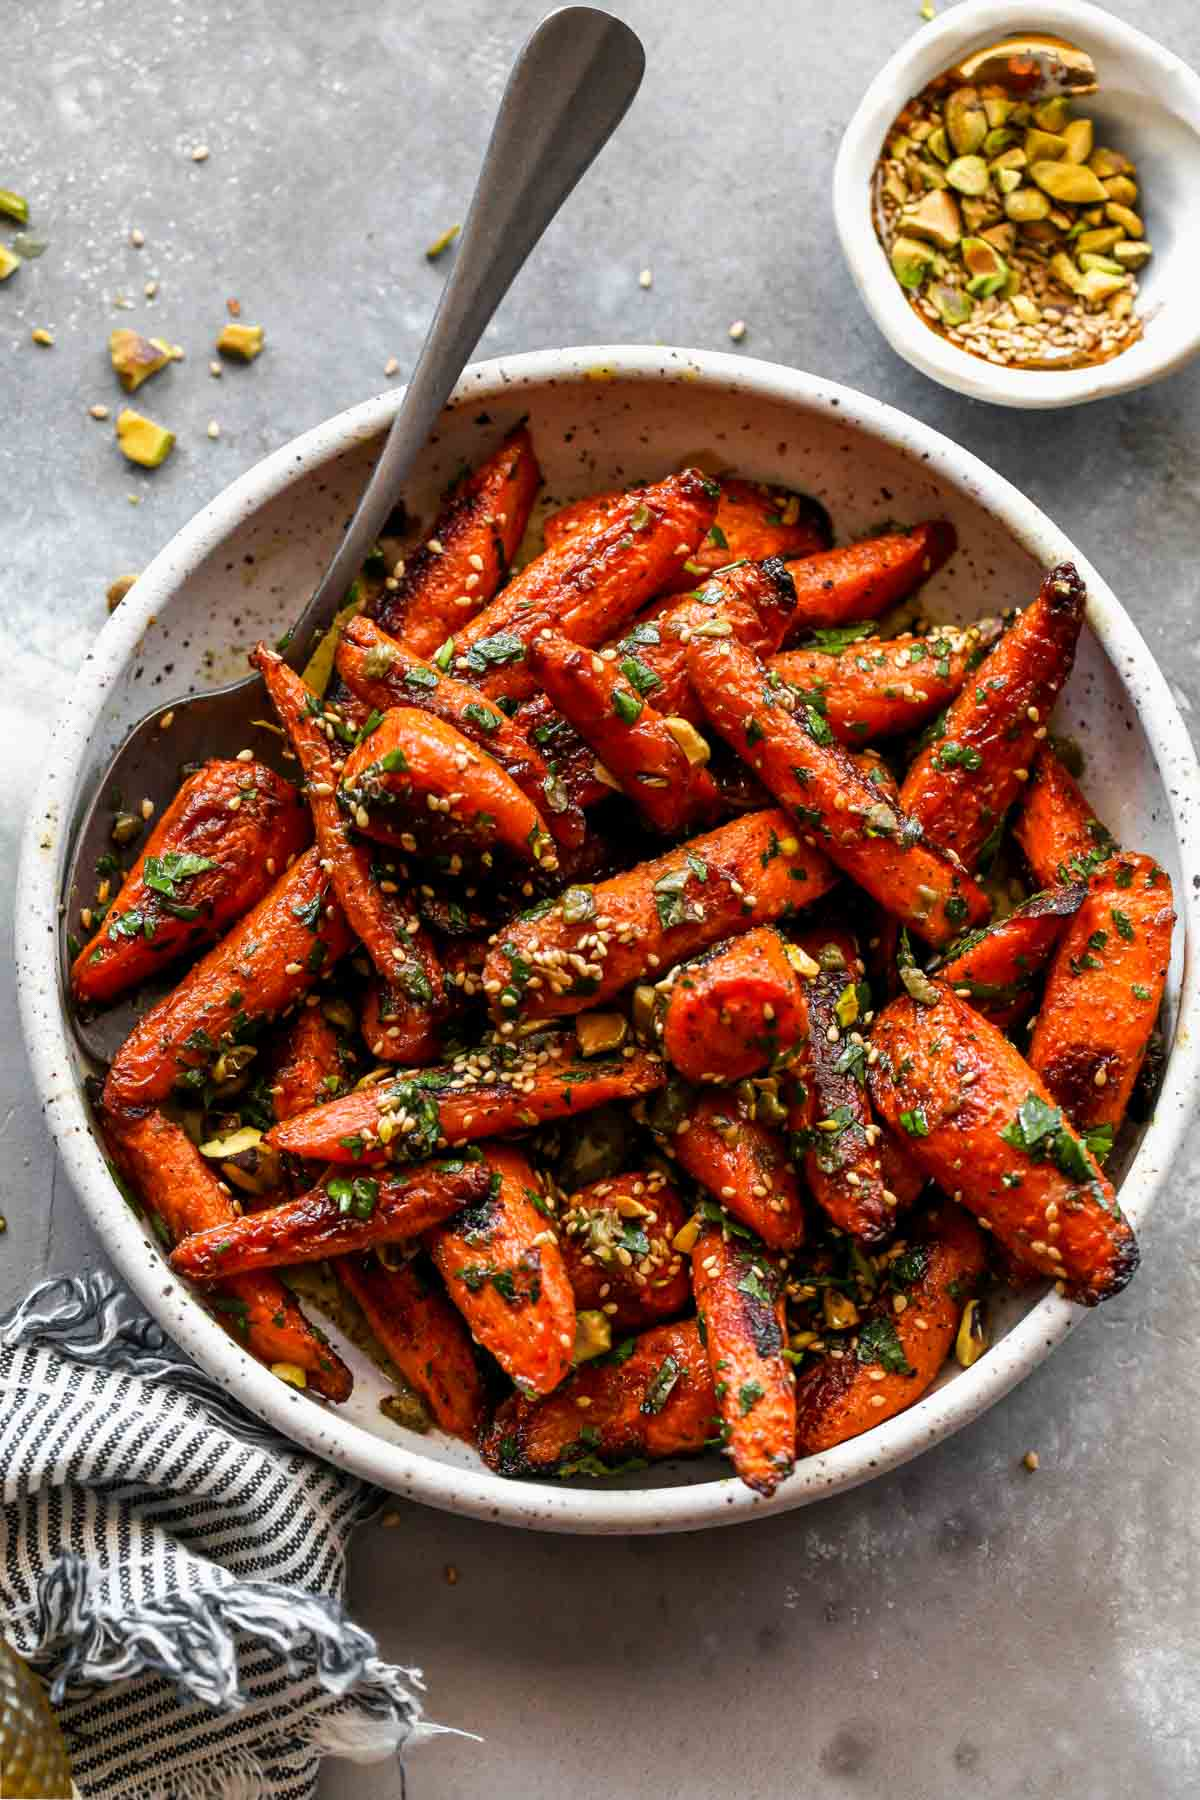 Roasted carrots in a white bowl topped with parsley and pistachios